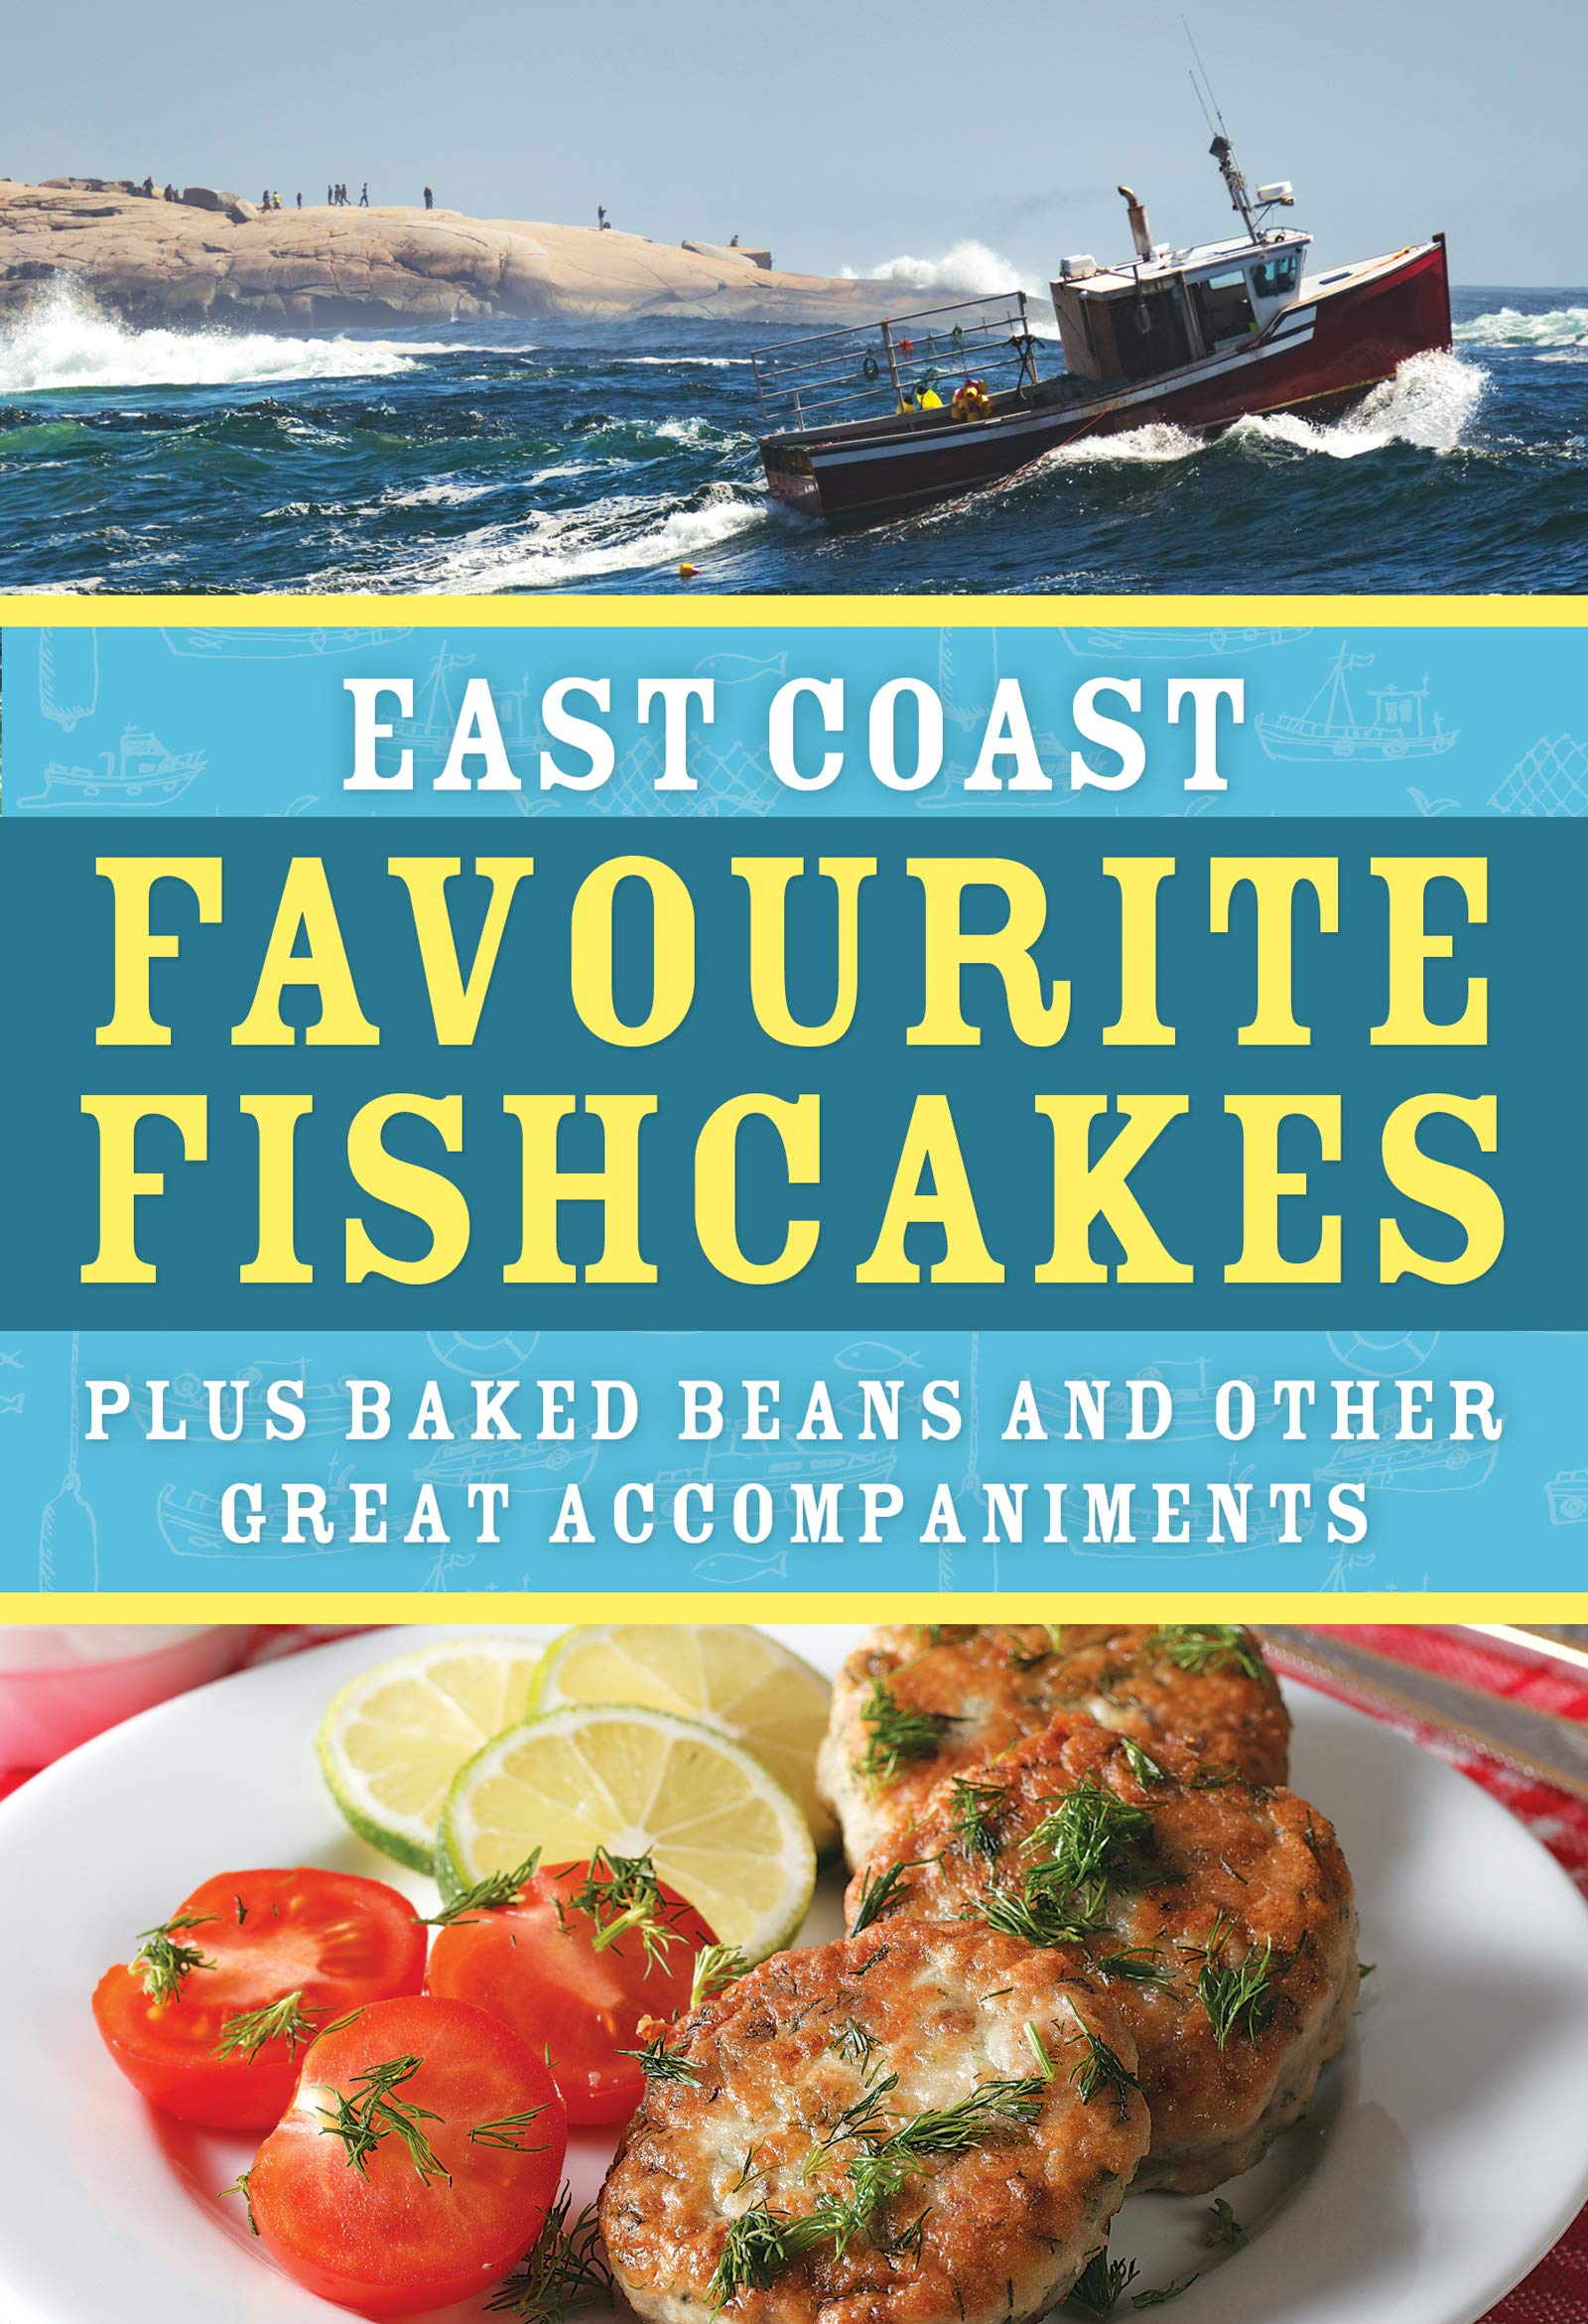 Image OfEast Coast Favourite Fish Cakes: Plus Baked Beans And Other Great Accompaniments